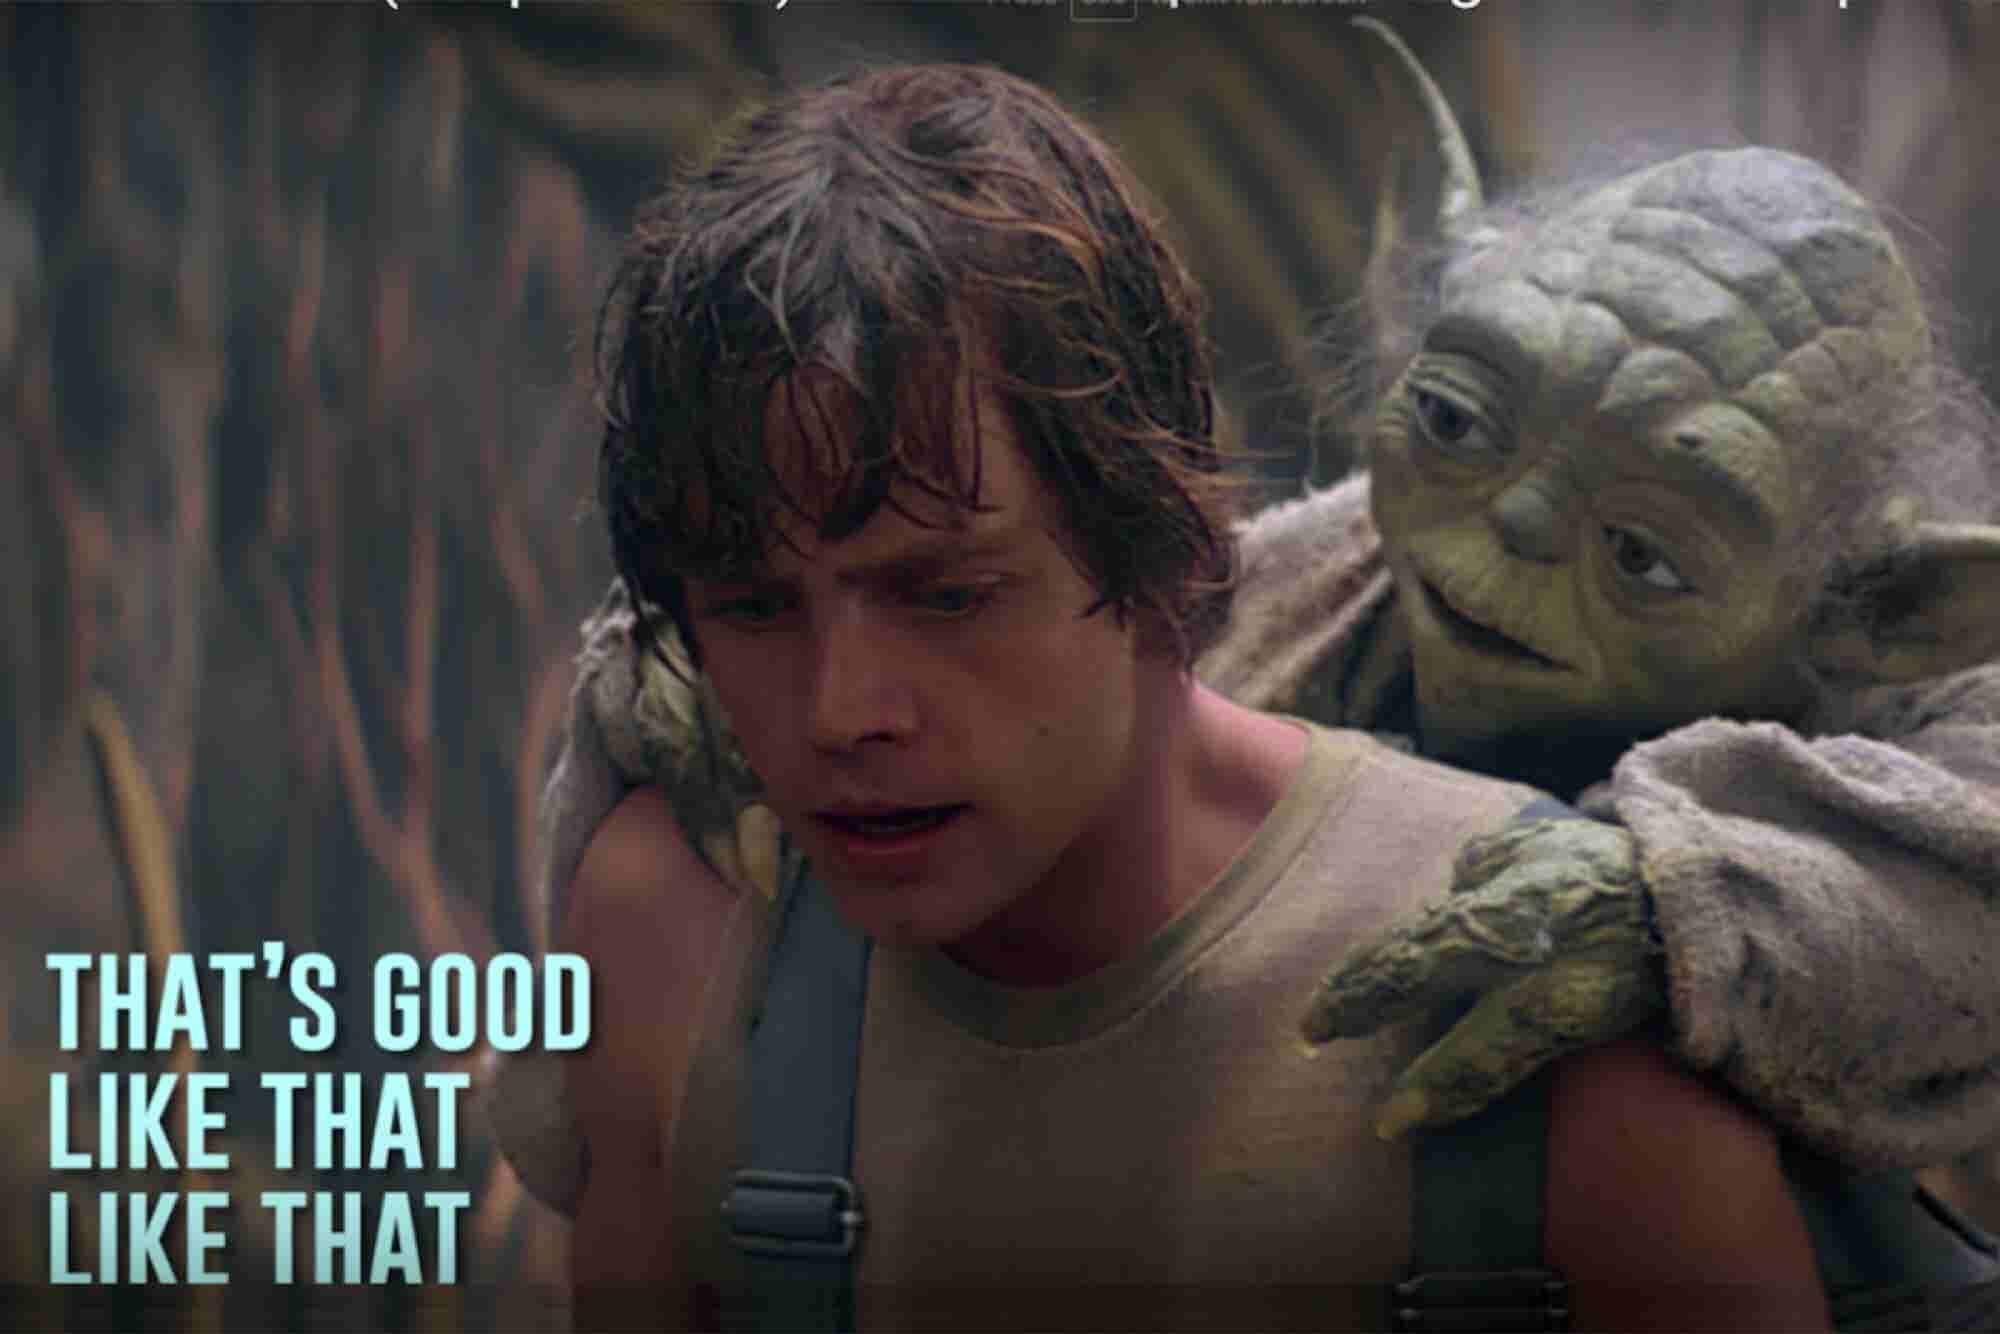 Watch This Hilarious Bad Lip Reading of 'The Empire Strikes Back'